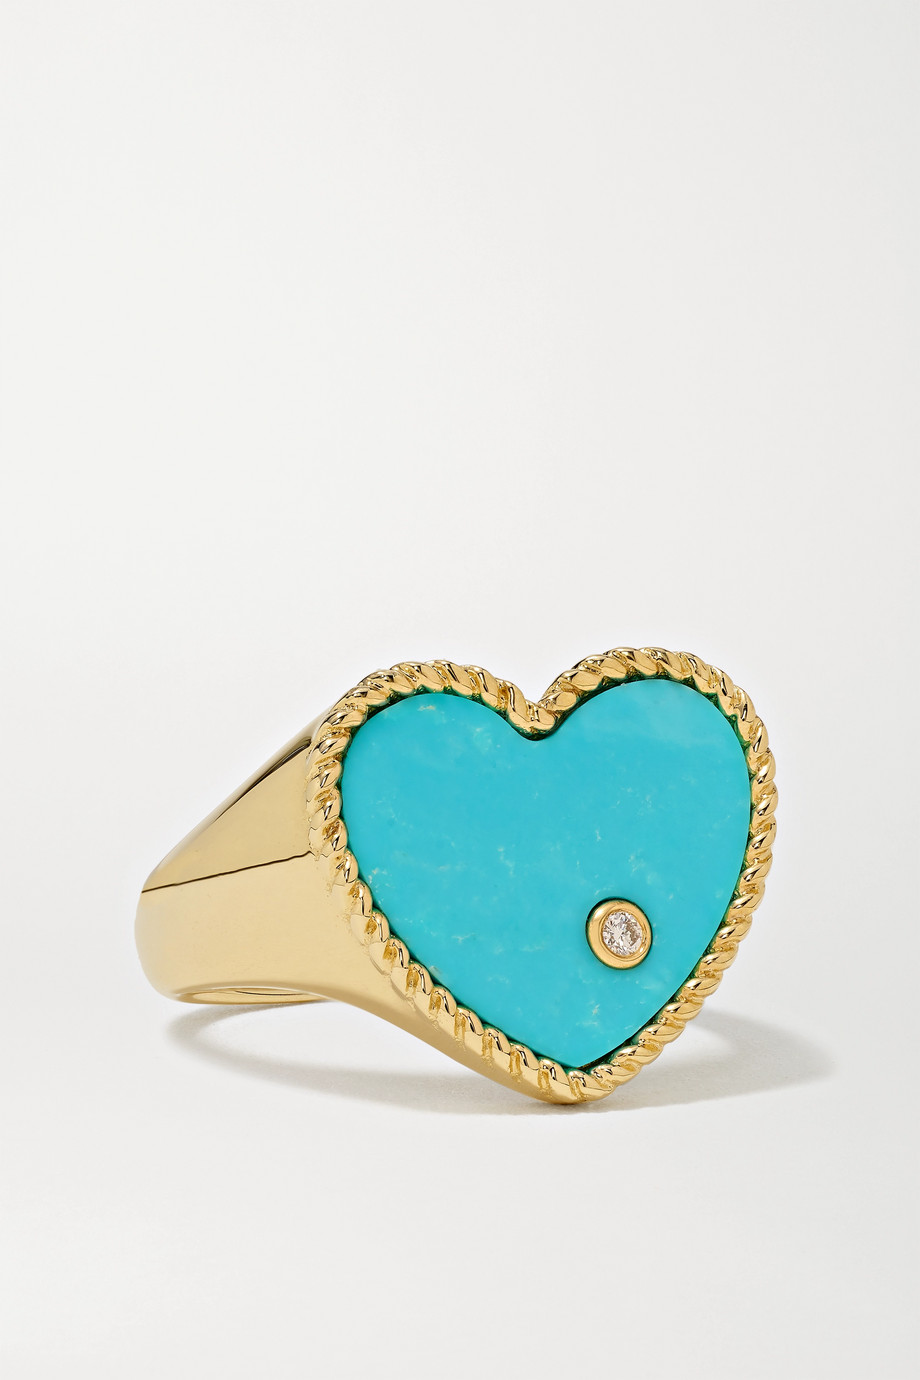 YVONNE LÉON 9-karat gold, turquoise and diamond signet ring